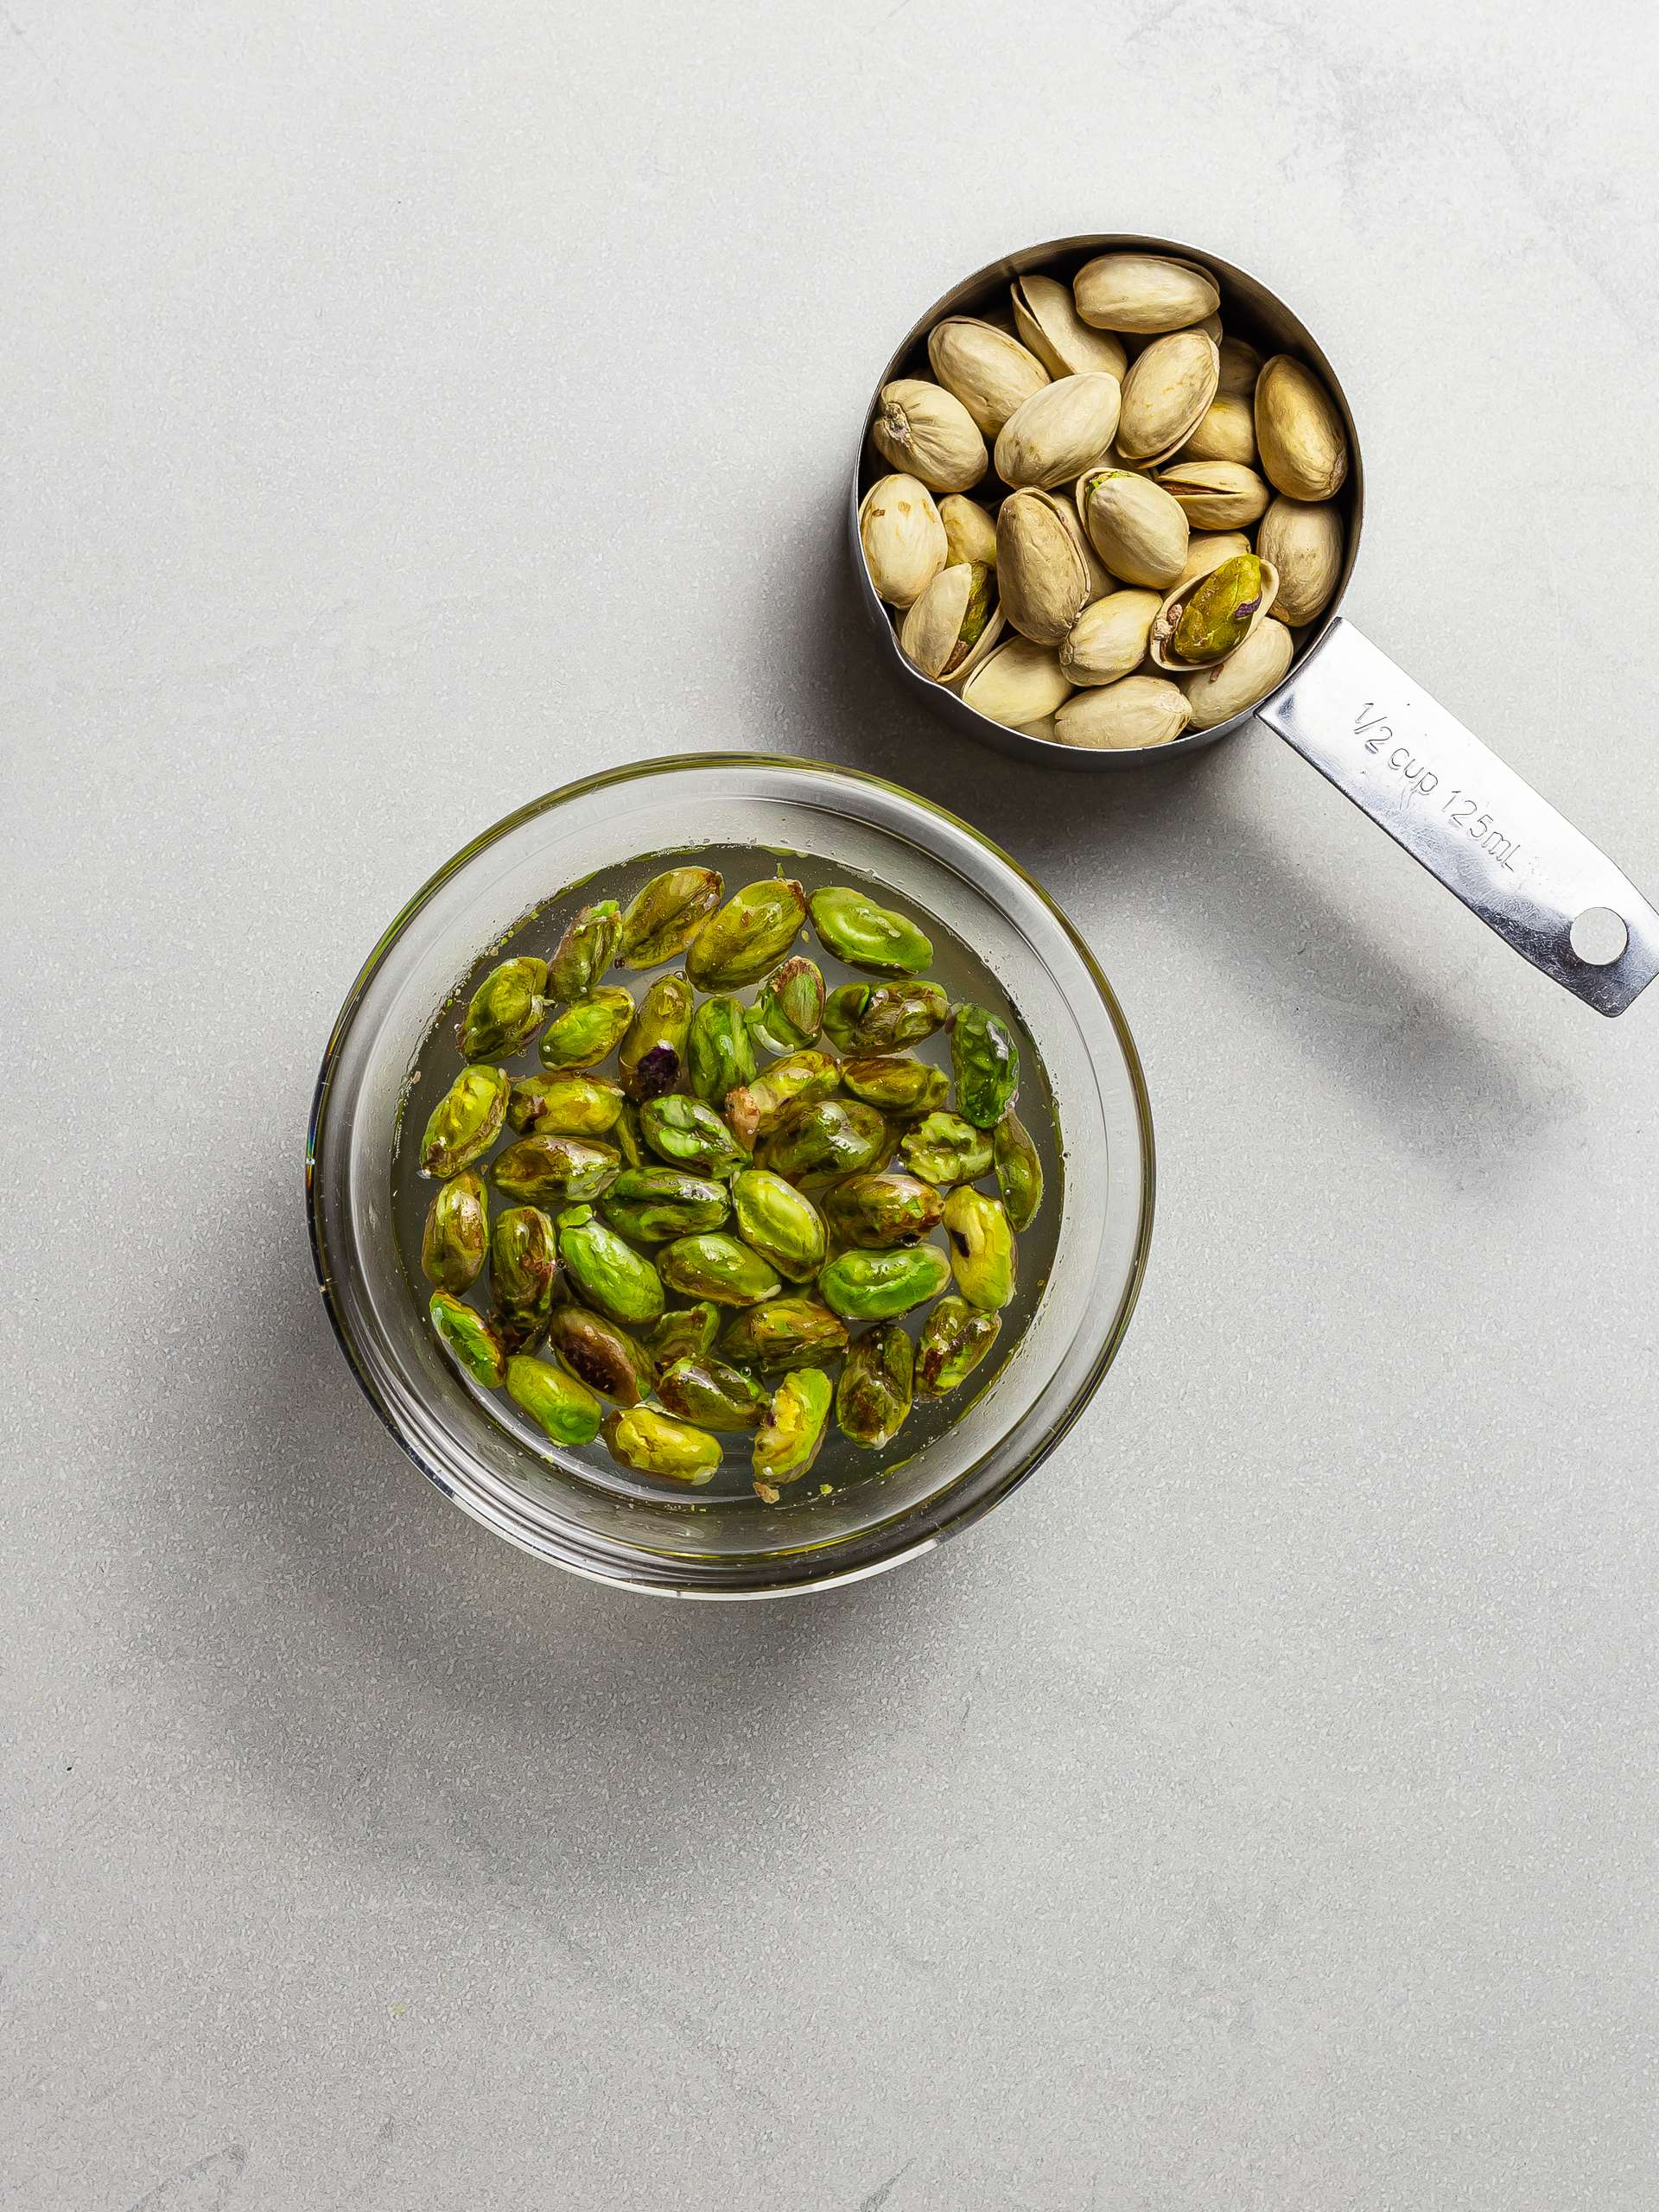 soaked pistachio nuts